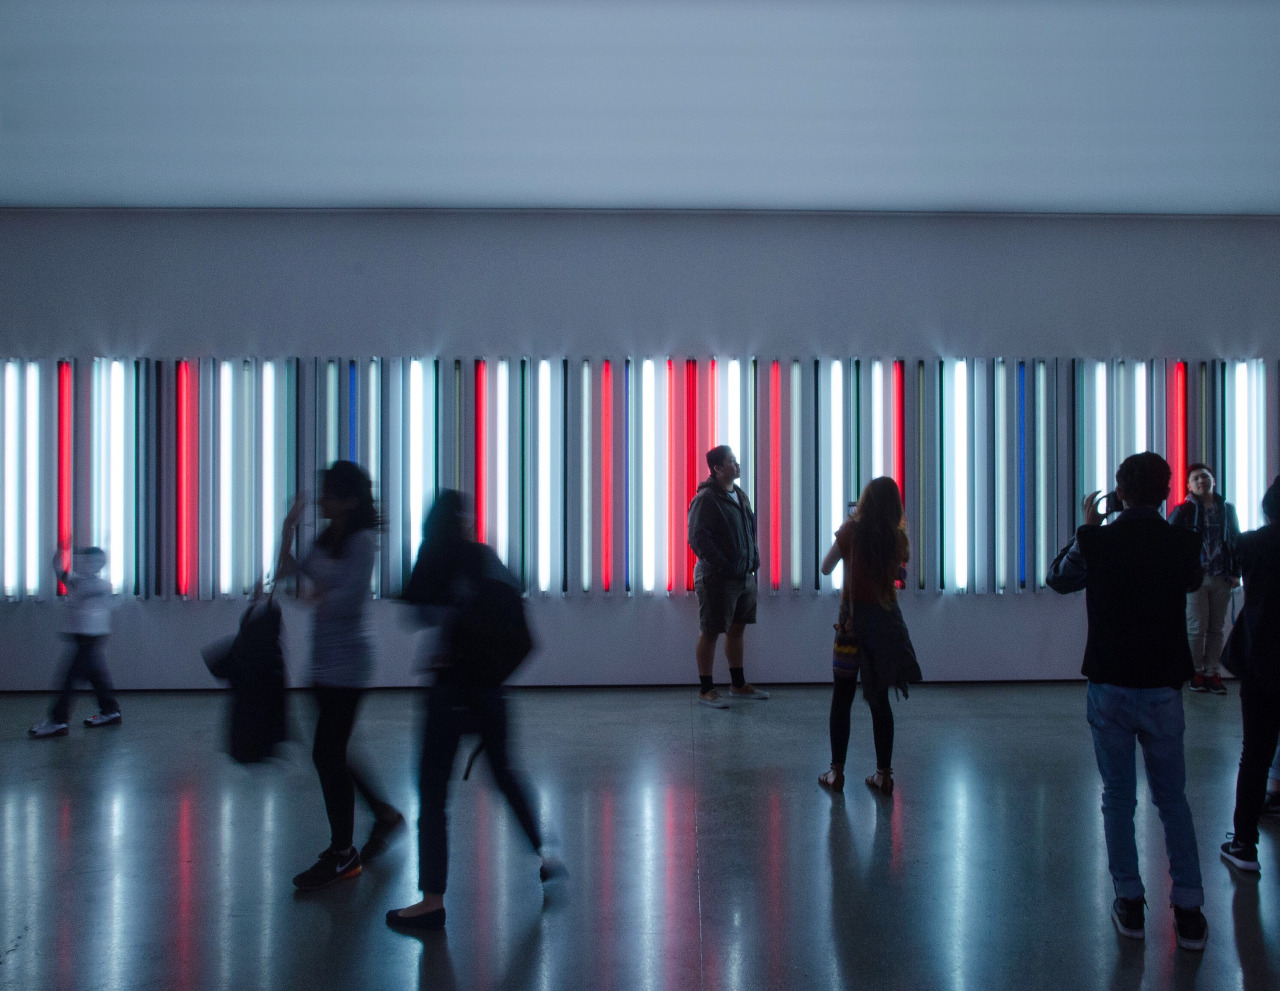 Robert Irwin installation at LACMA in Los Angeles.